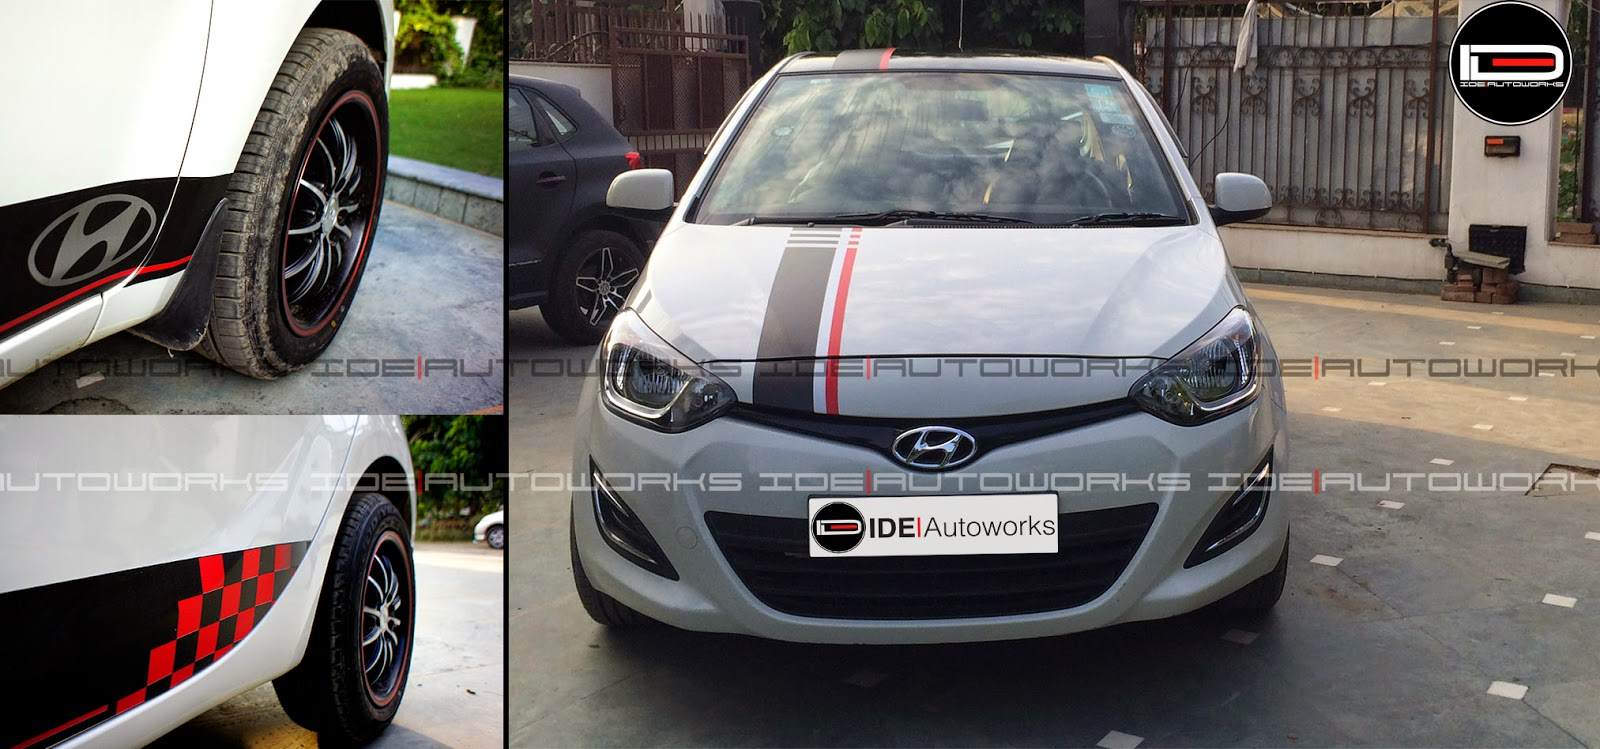 Swift with racing stripes ideautoworks racing stripes ide autoworks pinterest racing stripes